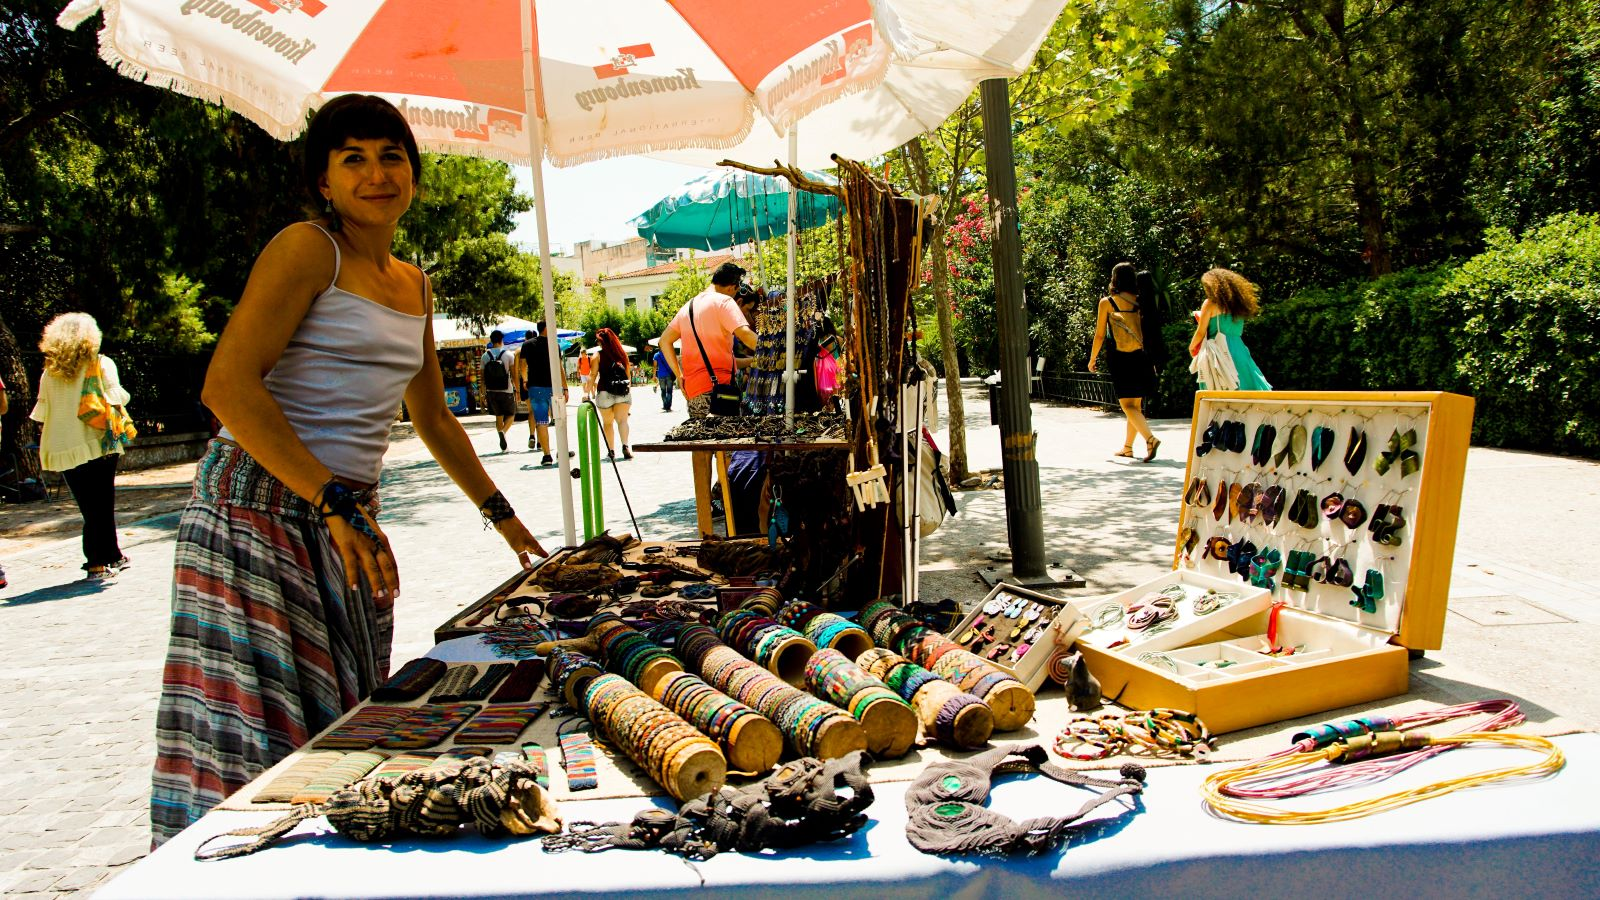 Buy souvenirs for your loved ones back home from the street vendors in Athens' Thisseio neighborhood. Source: cnn.gr